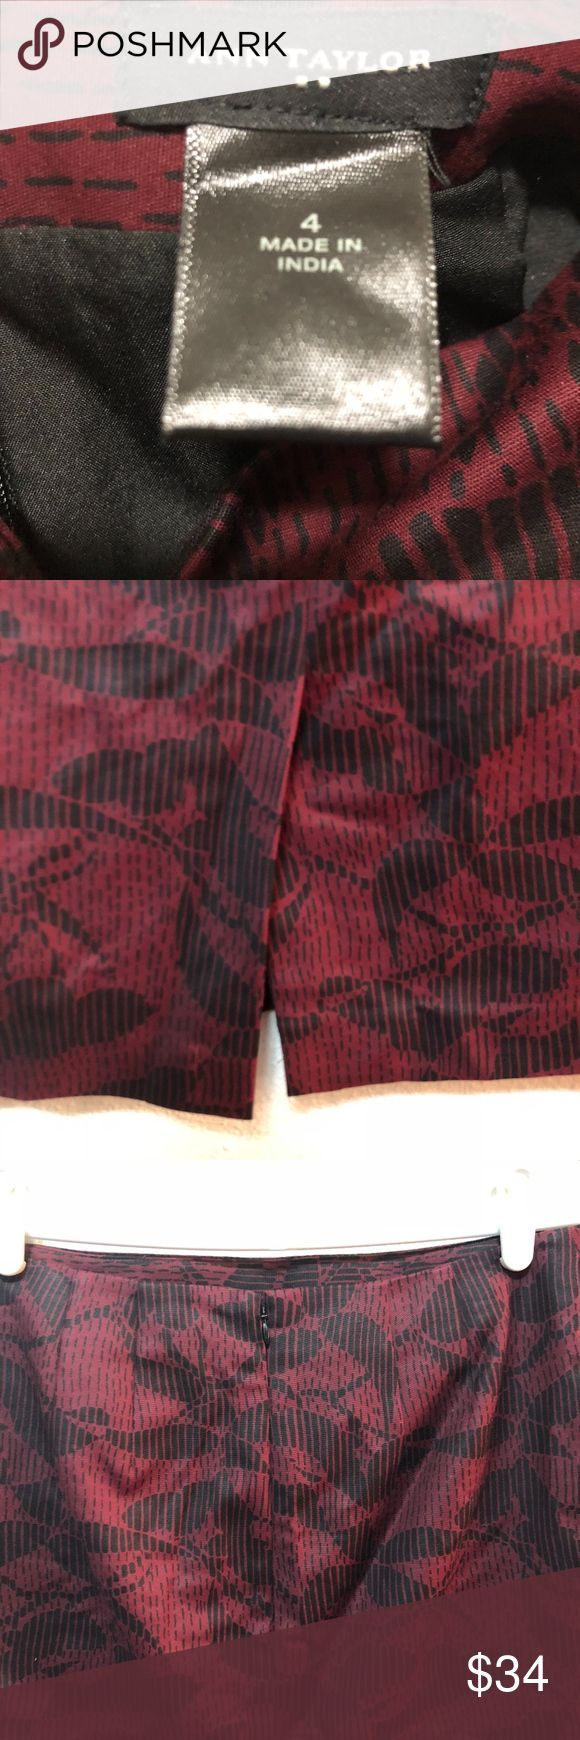 Ann Taylor Pencil Skirt Size 4 Black Red Floral Ann Taylor Pencil Skirt Size 4 B…